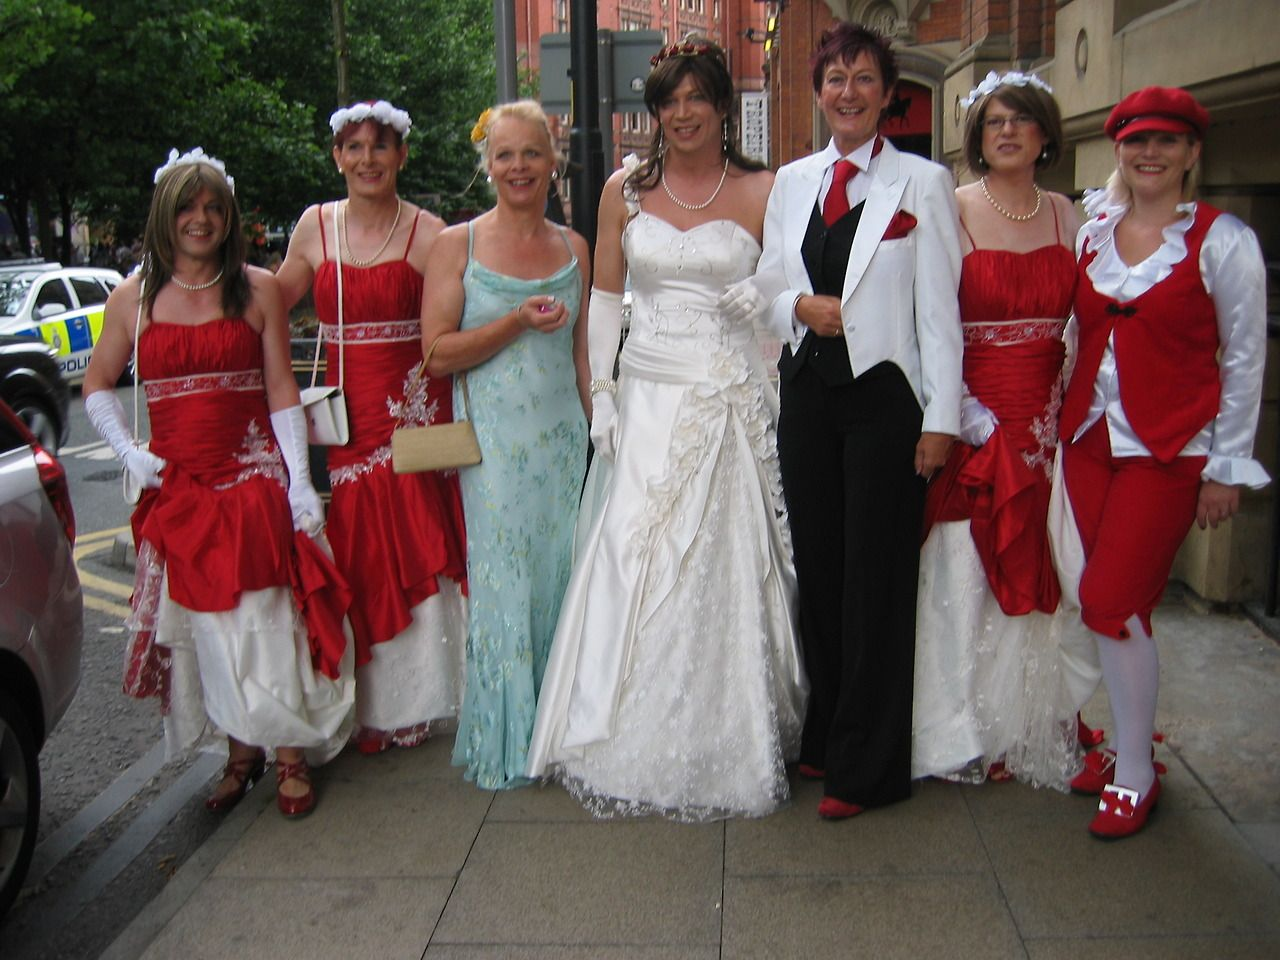 Strümpfe Hochzeit Male Femininity And Gender Role Reversal Feminization Of